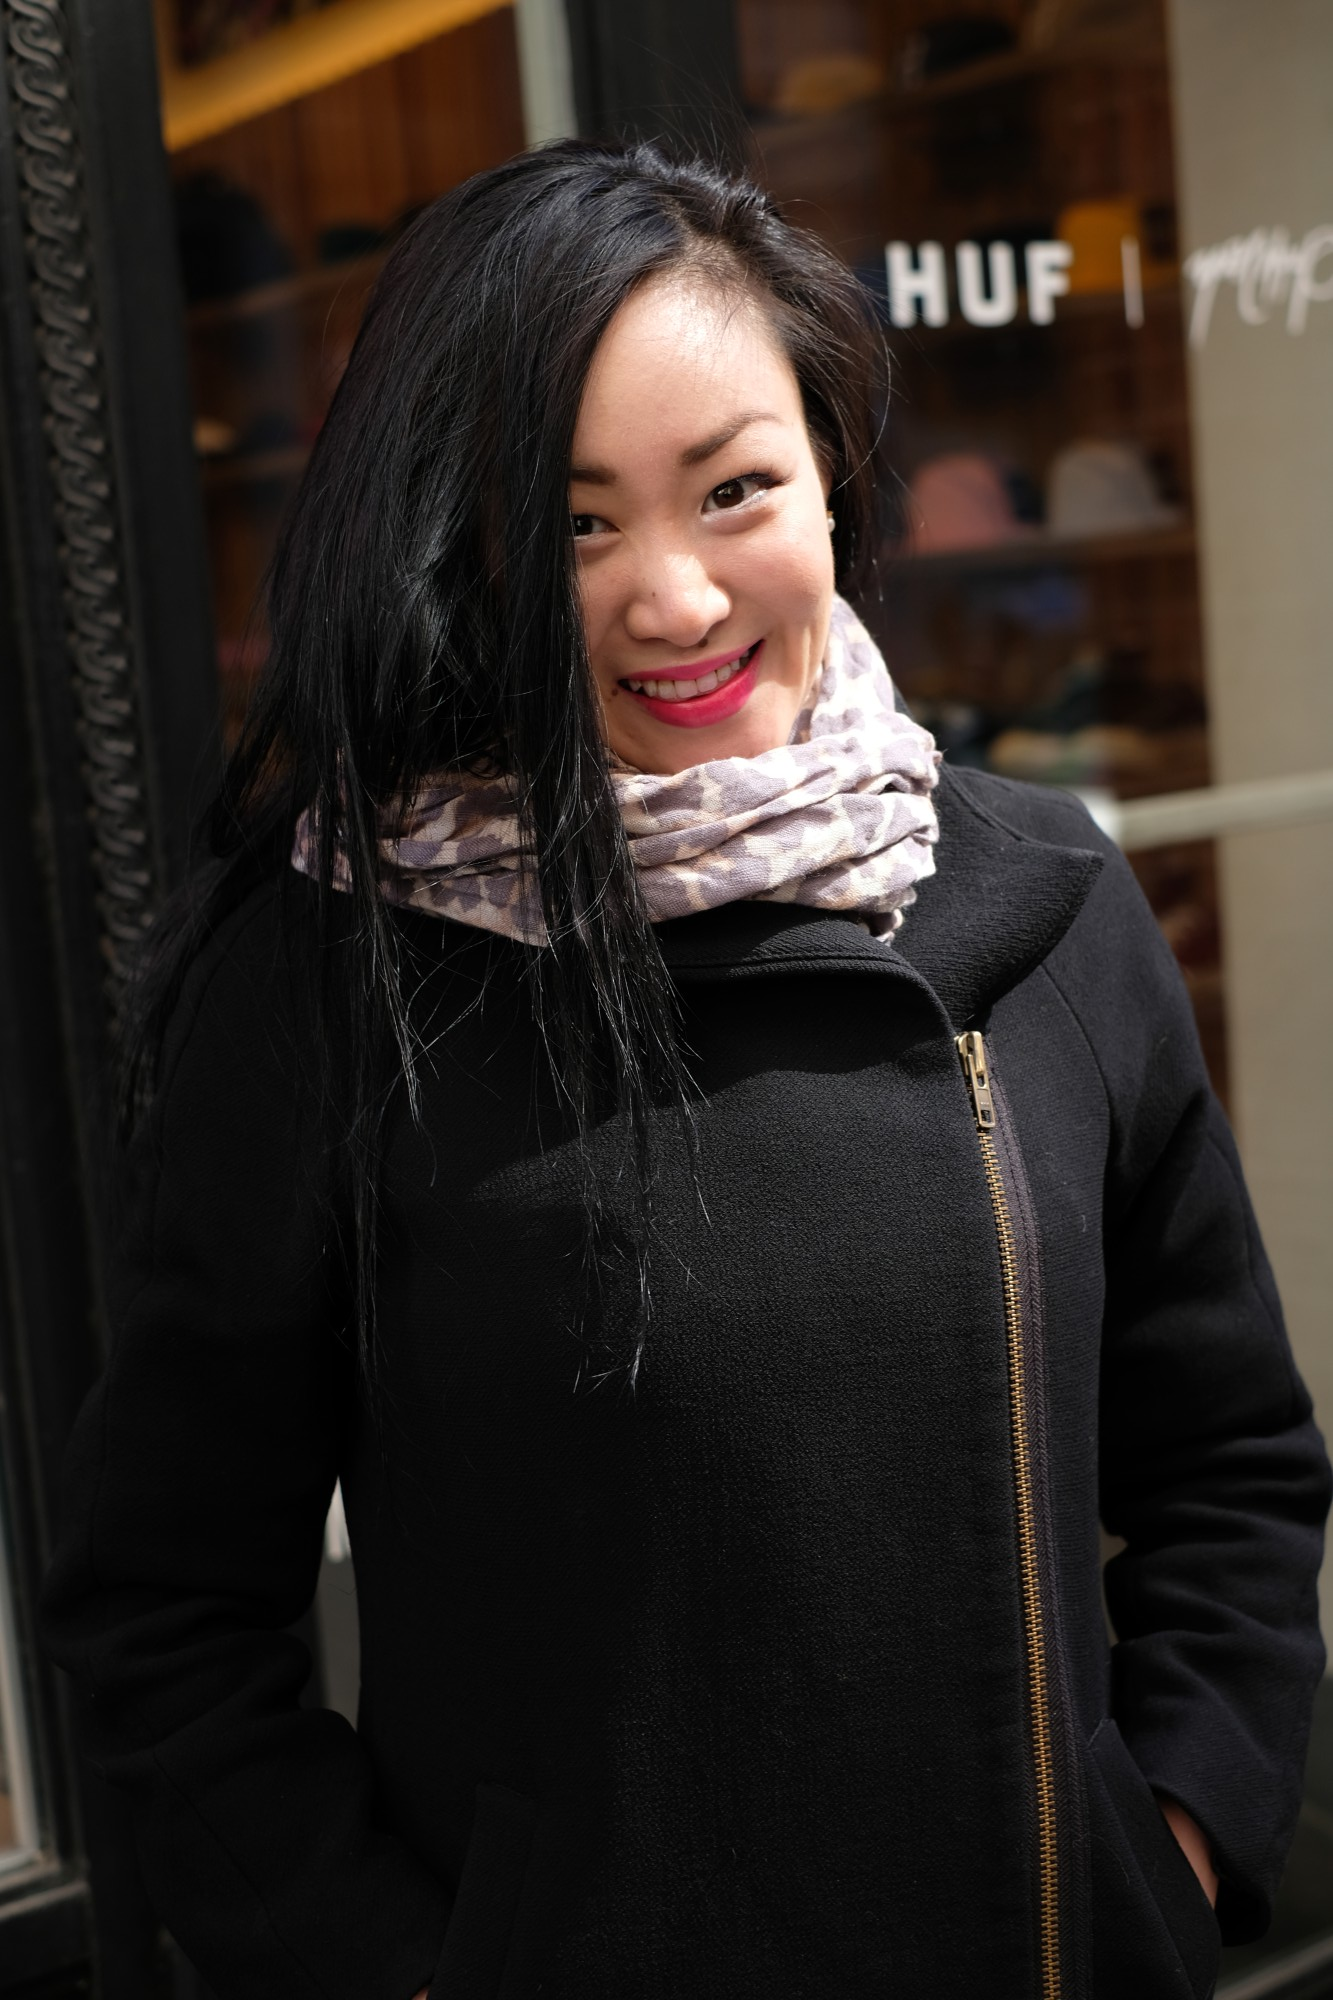 Asian girl in black outfit in NYC